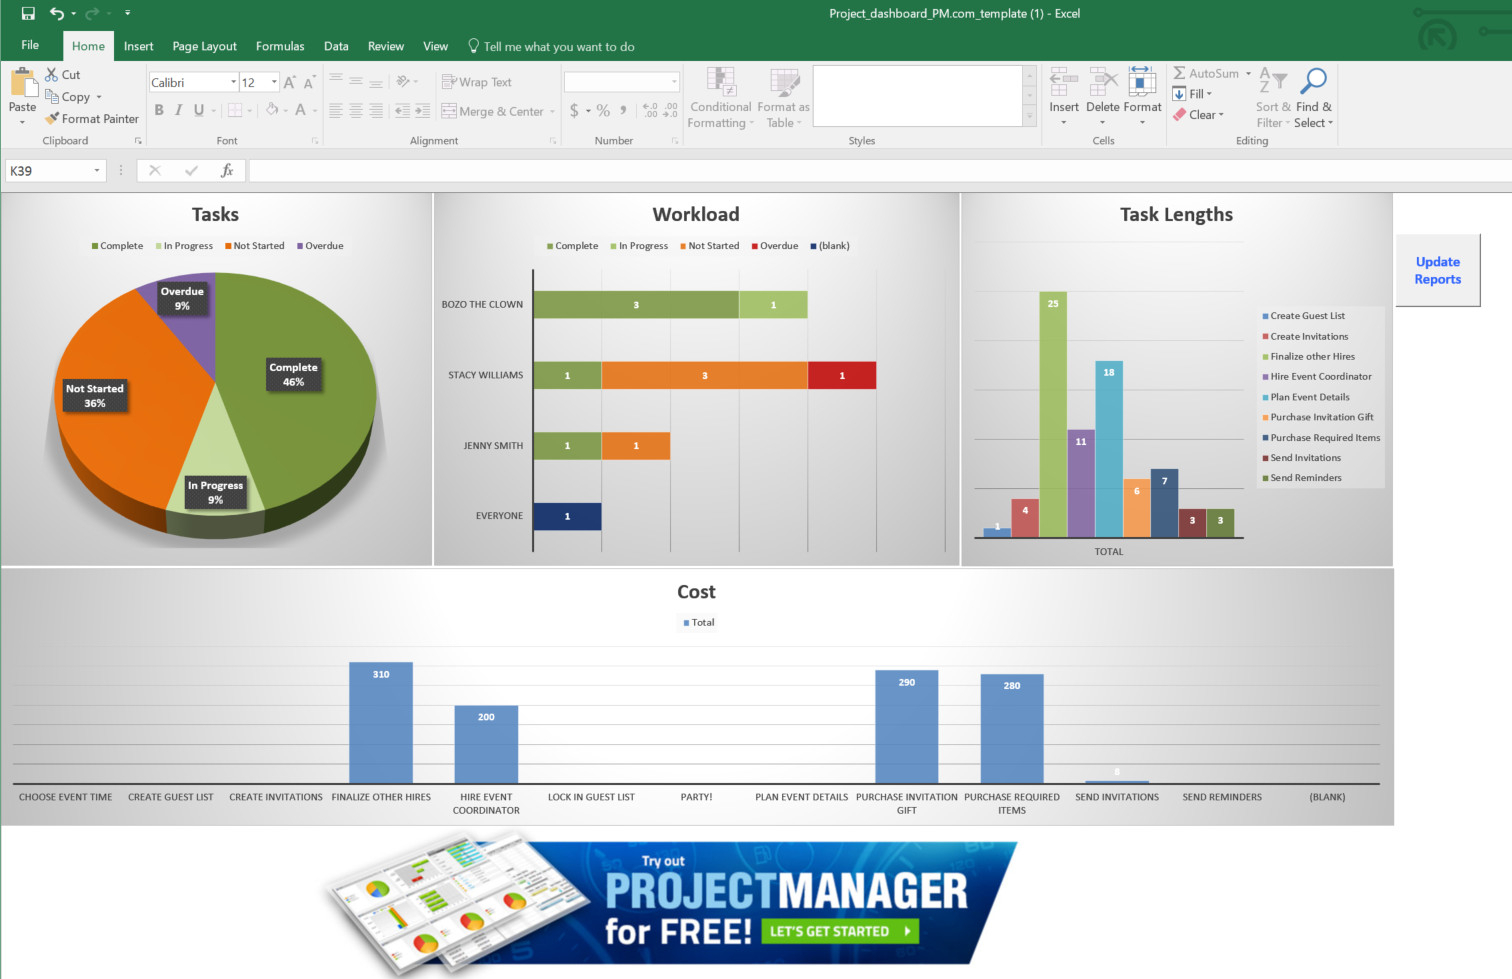 Guide To Excel Project Management - Projectmanager inside Spreadsheet Project Management